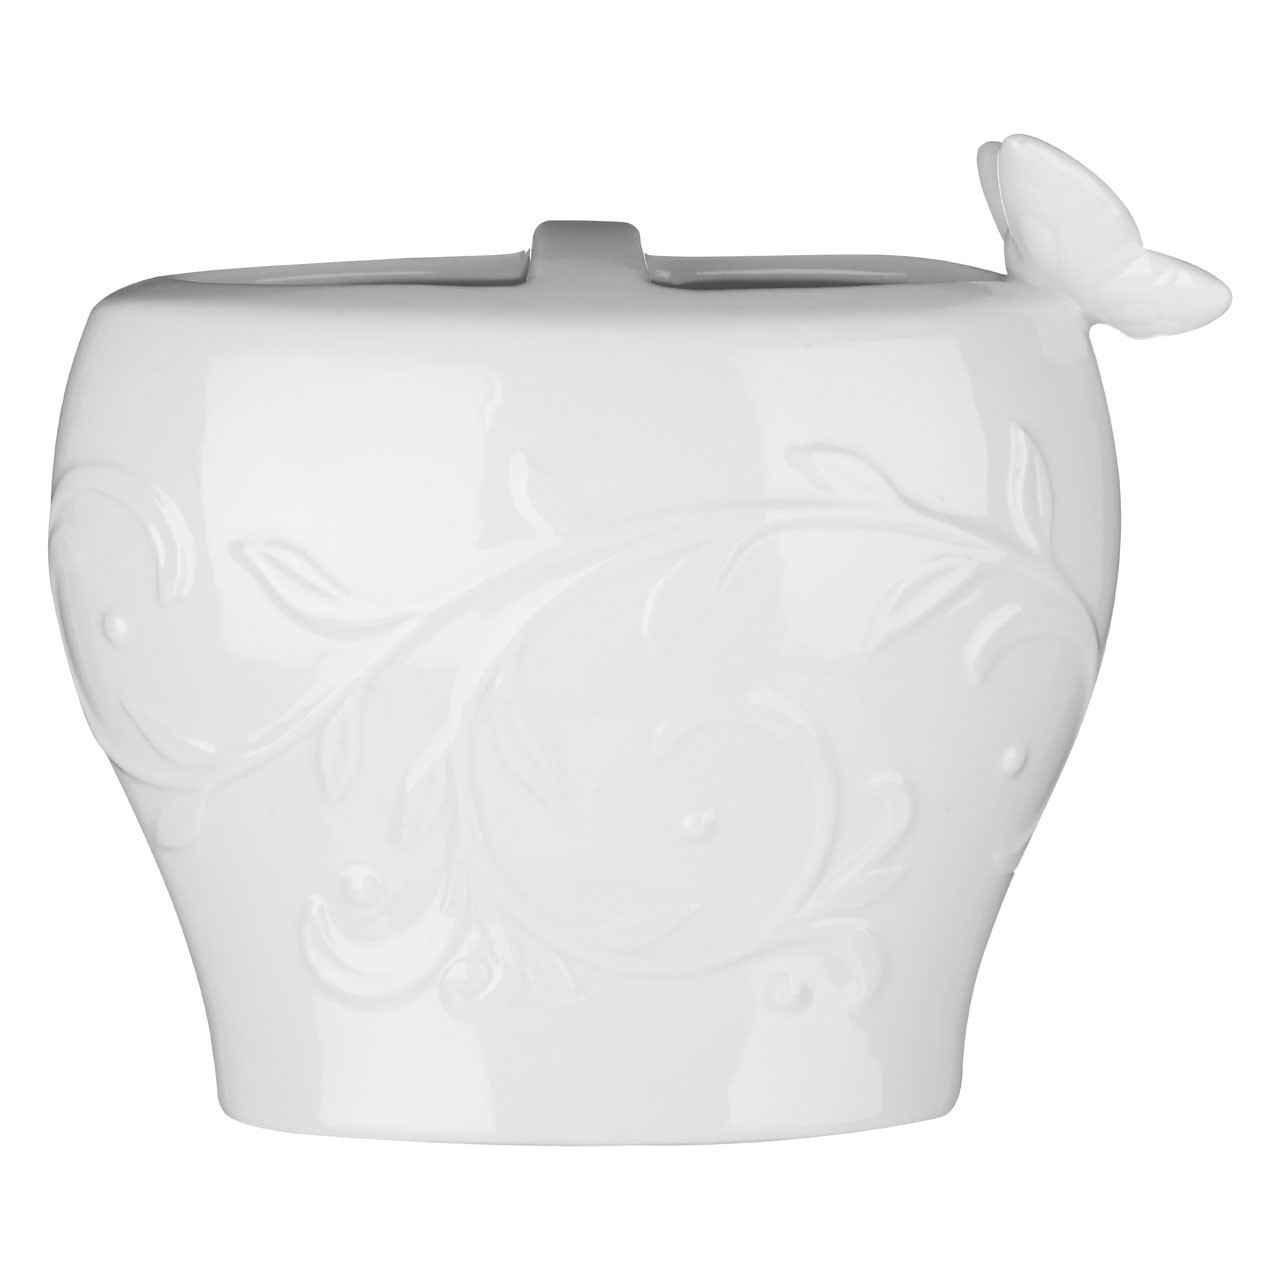 Prime Furnishing Edelle Toothbrush Holder - White